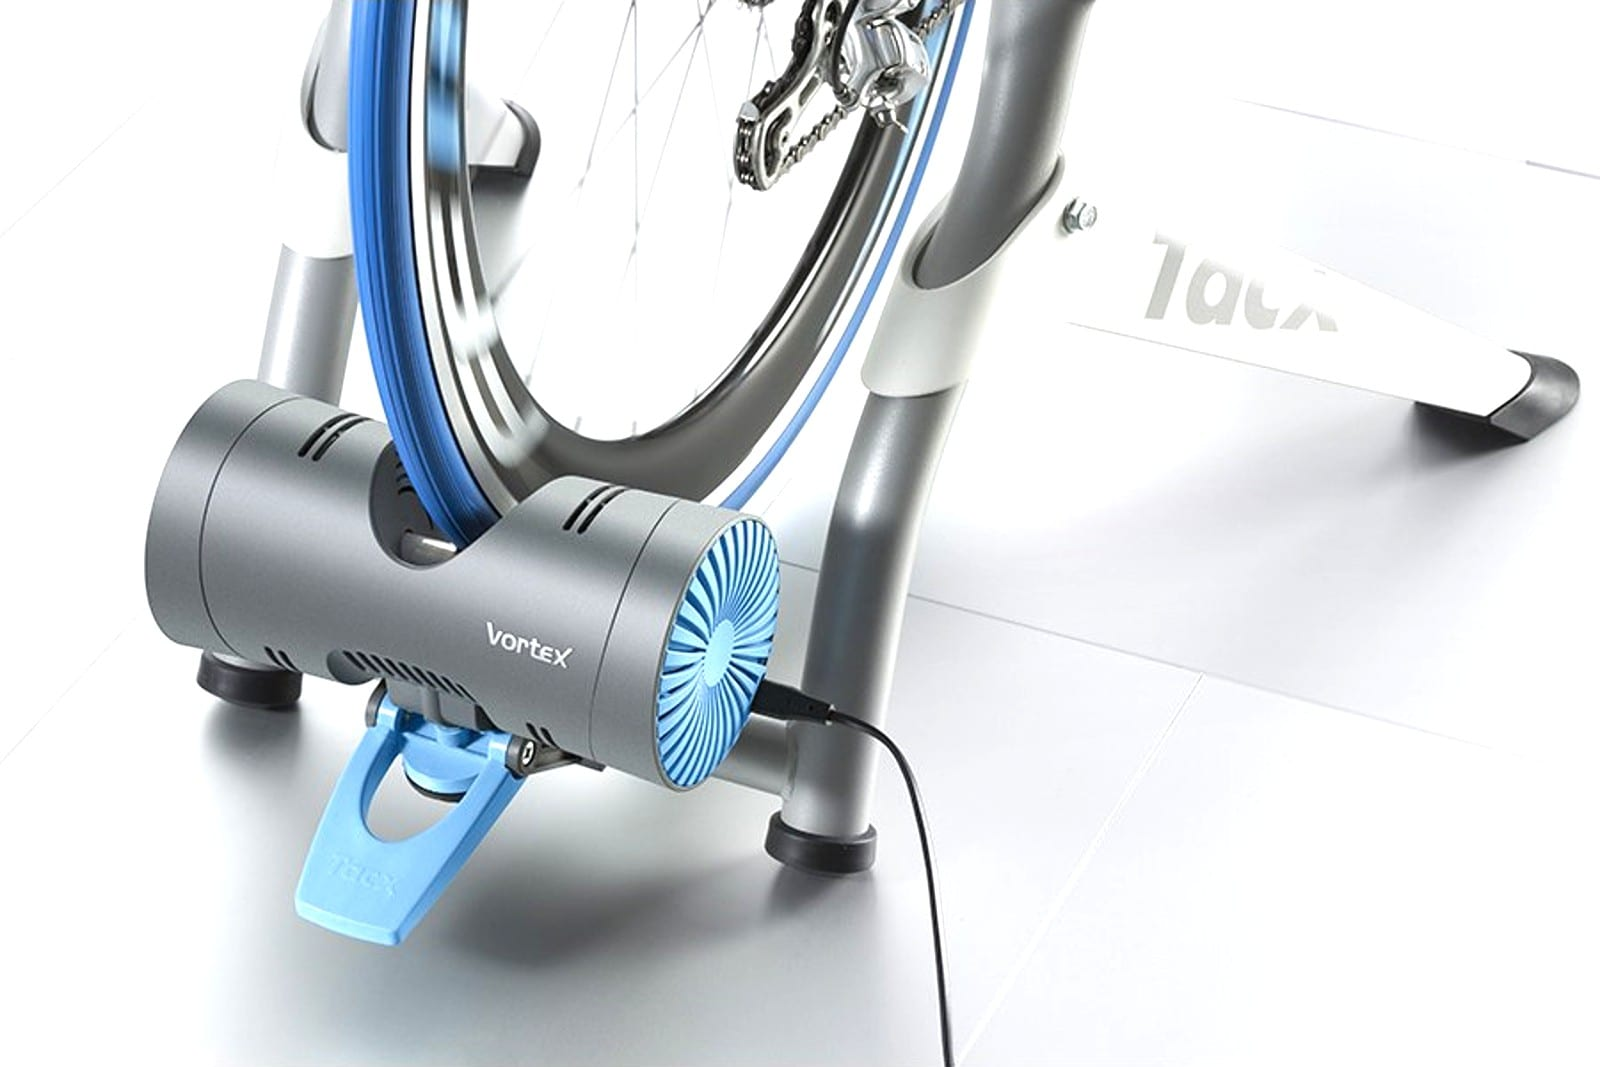 Tacx Vortex smart trainer makes Zwift affordable at home